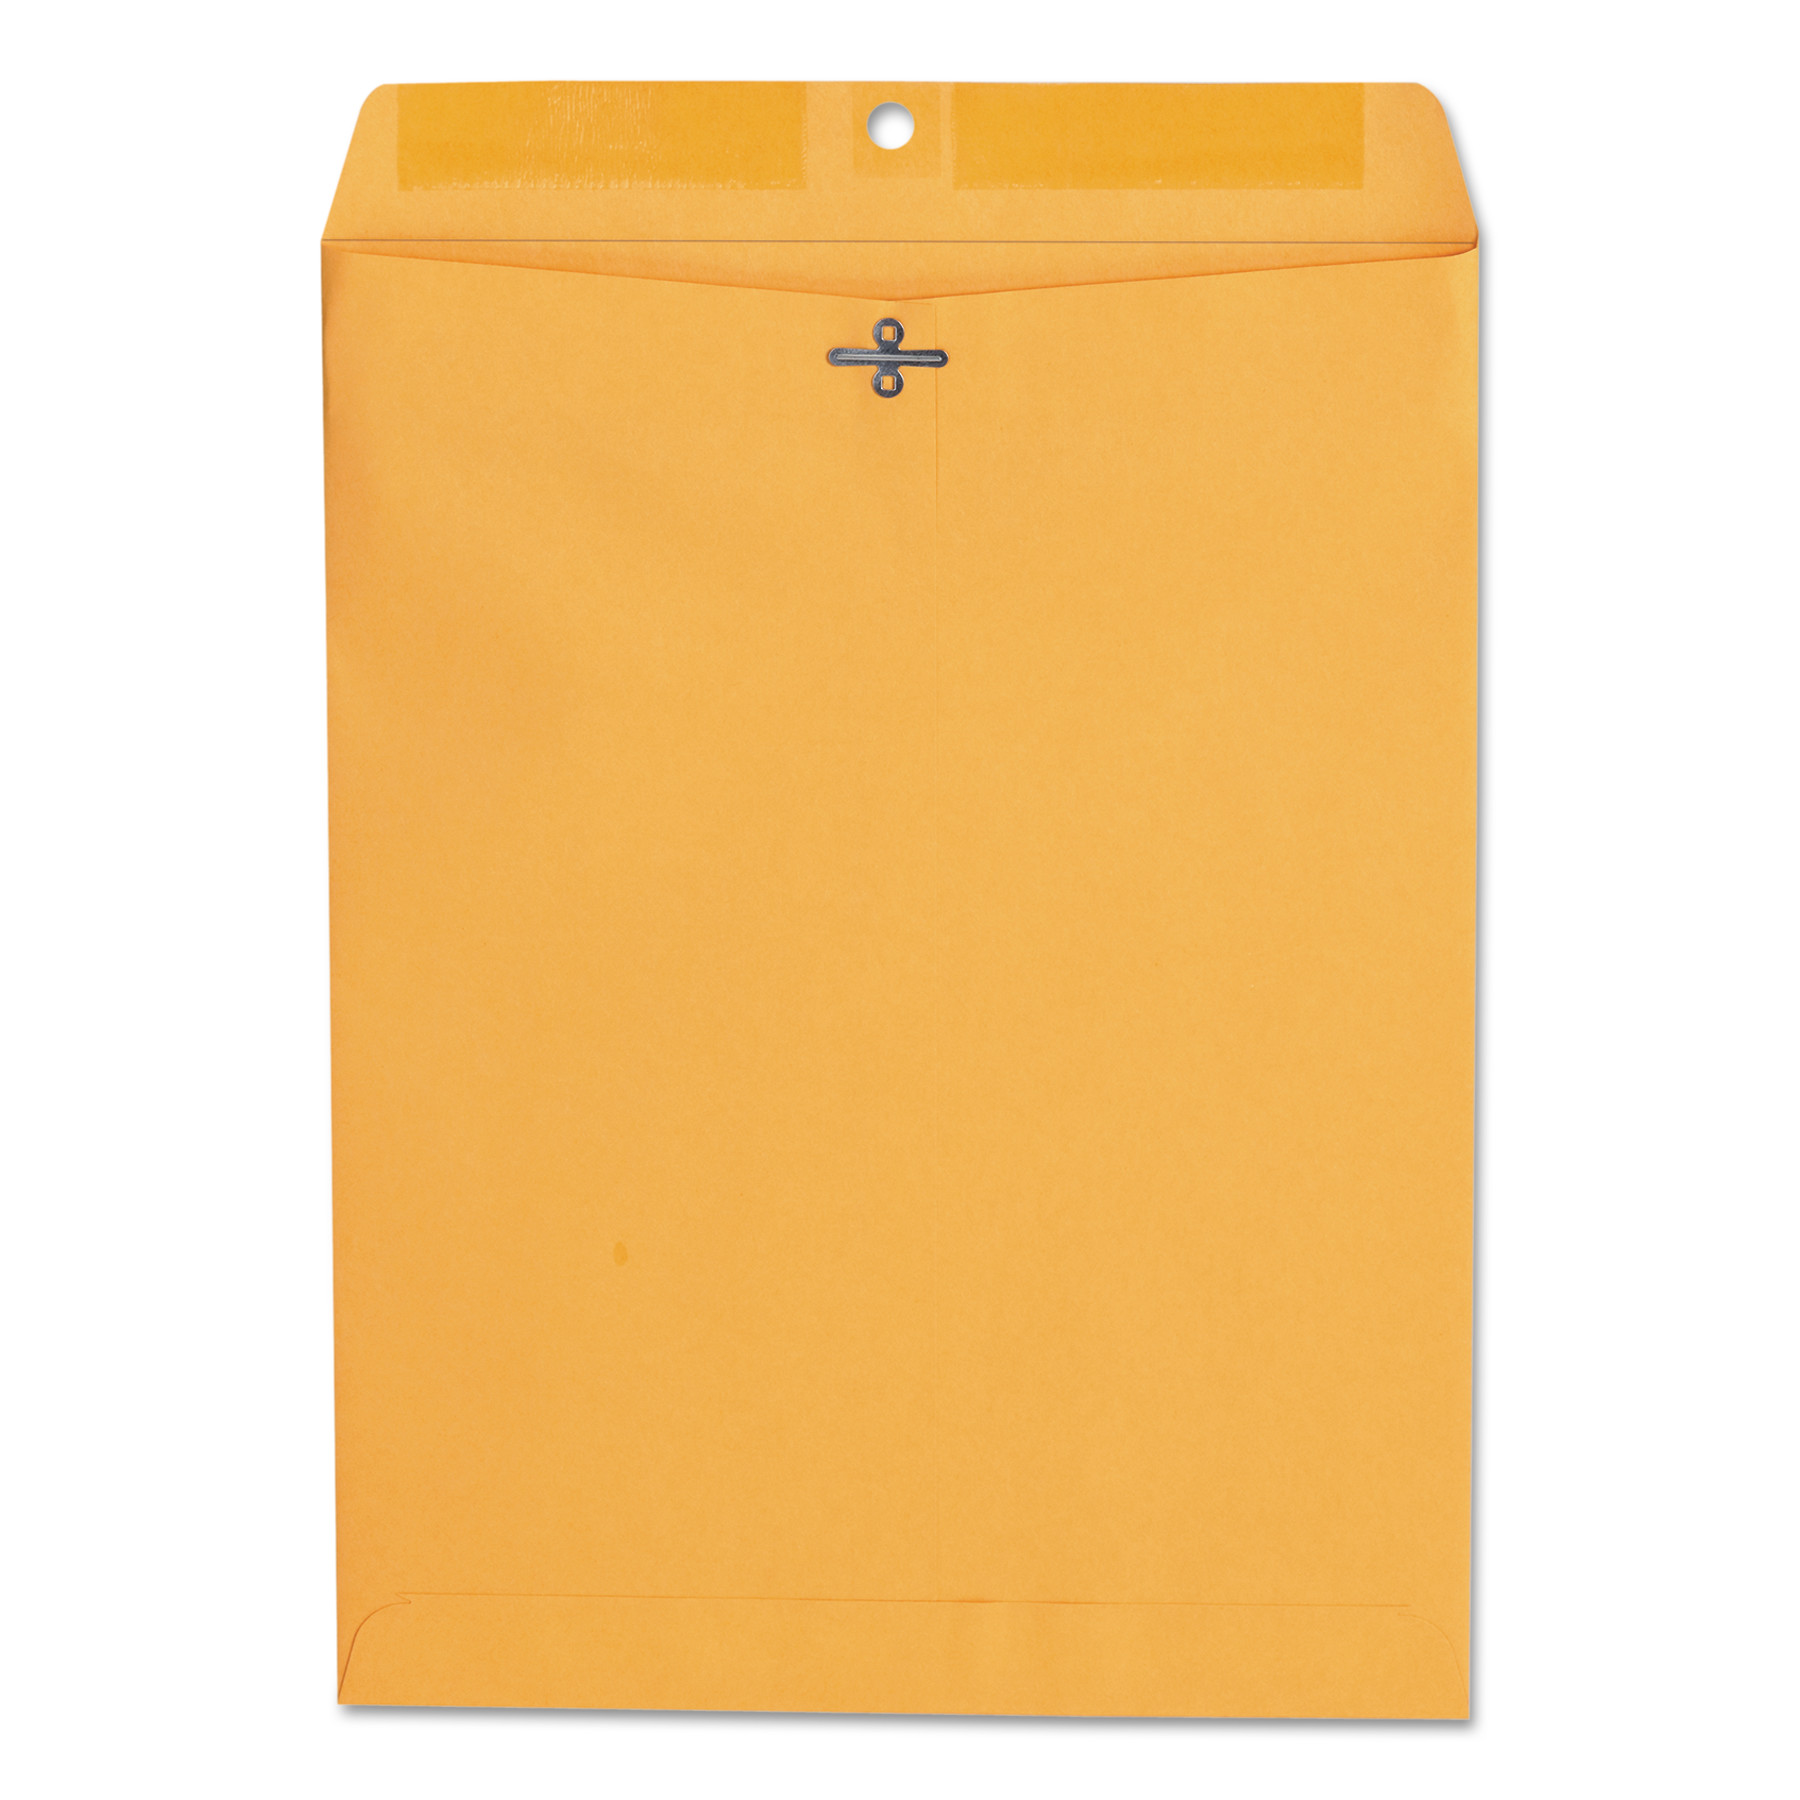 Kraft Clasp Envelope, Center Seam, 28lb, 10 x 13, Brown Kraft, 100/Box